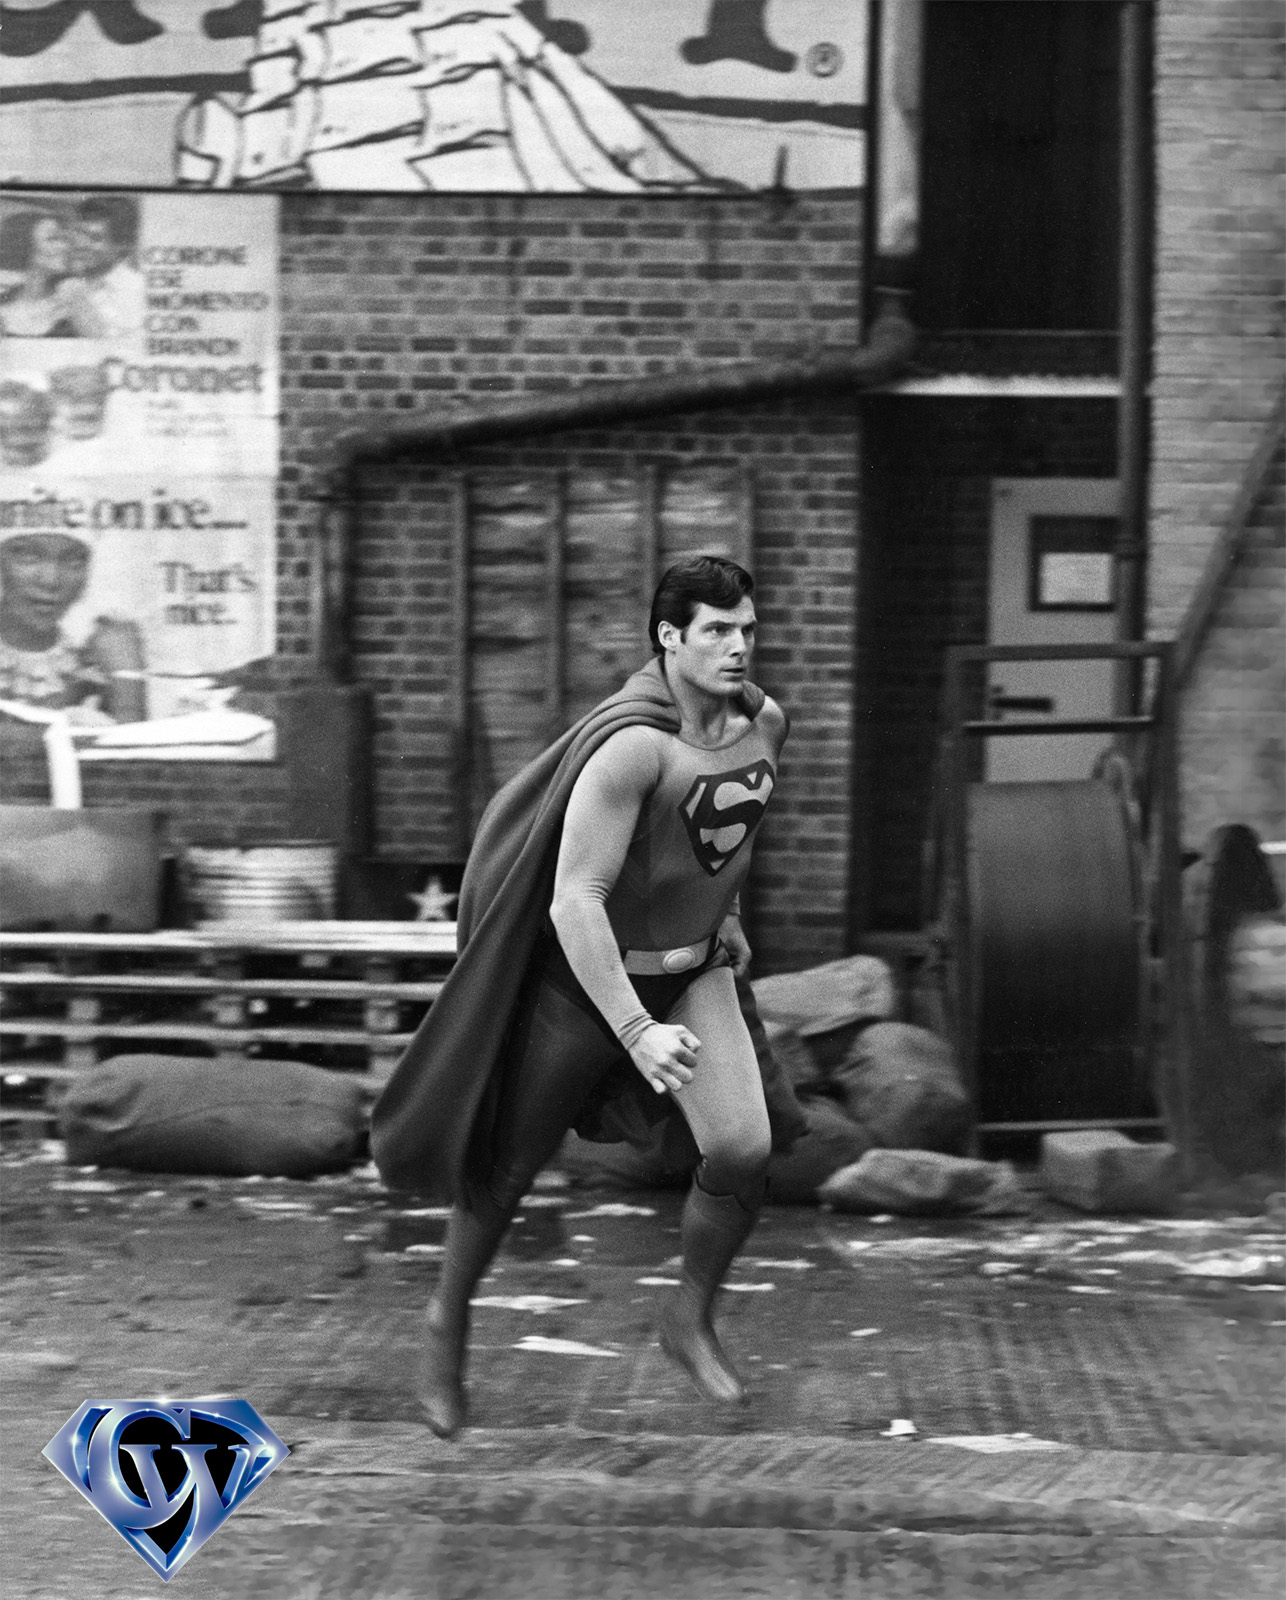 CW-SII-alley-change-Superman-B&W-expanded